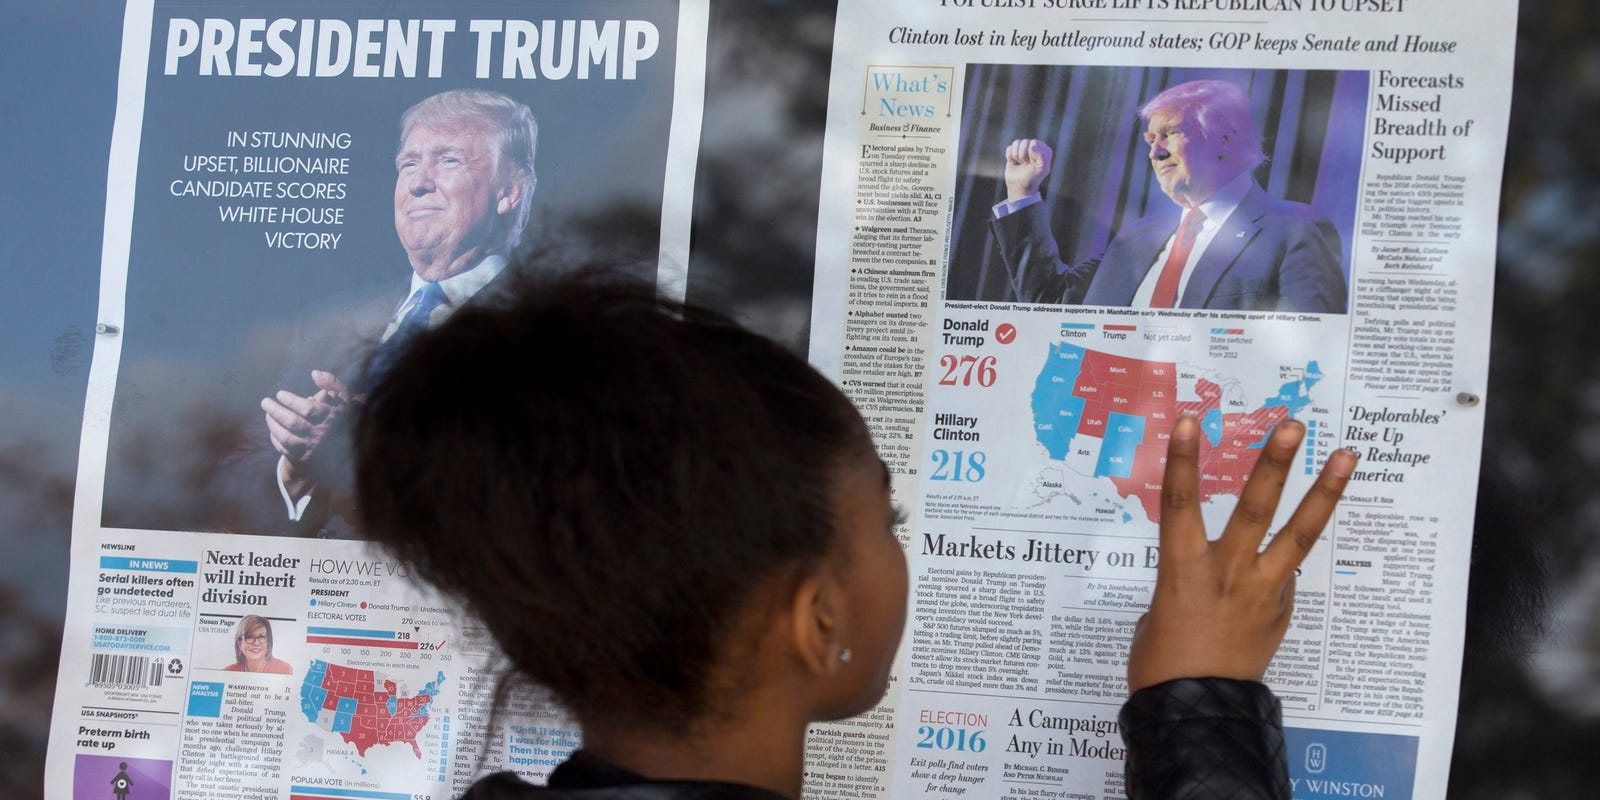 Donald Trump Will Be Disaster For >> Trump Called Electoral College A Disaster In 2012 Tweet